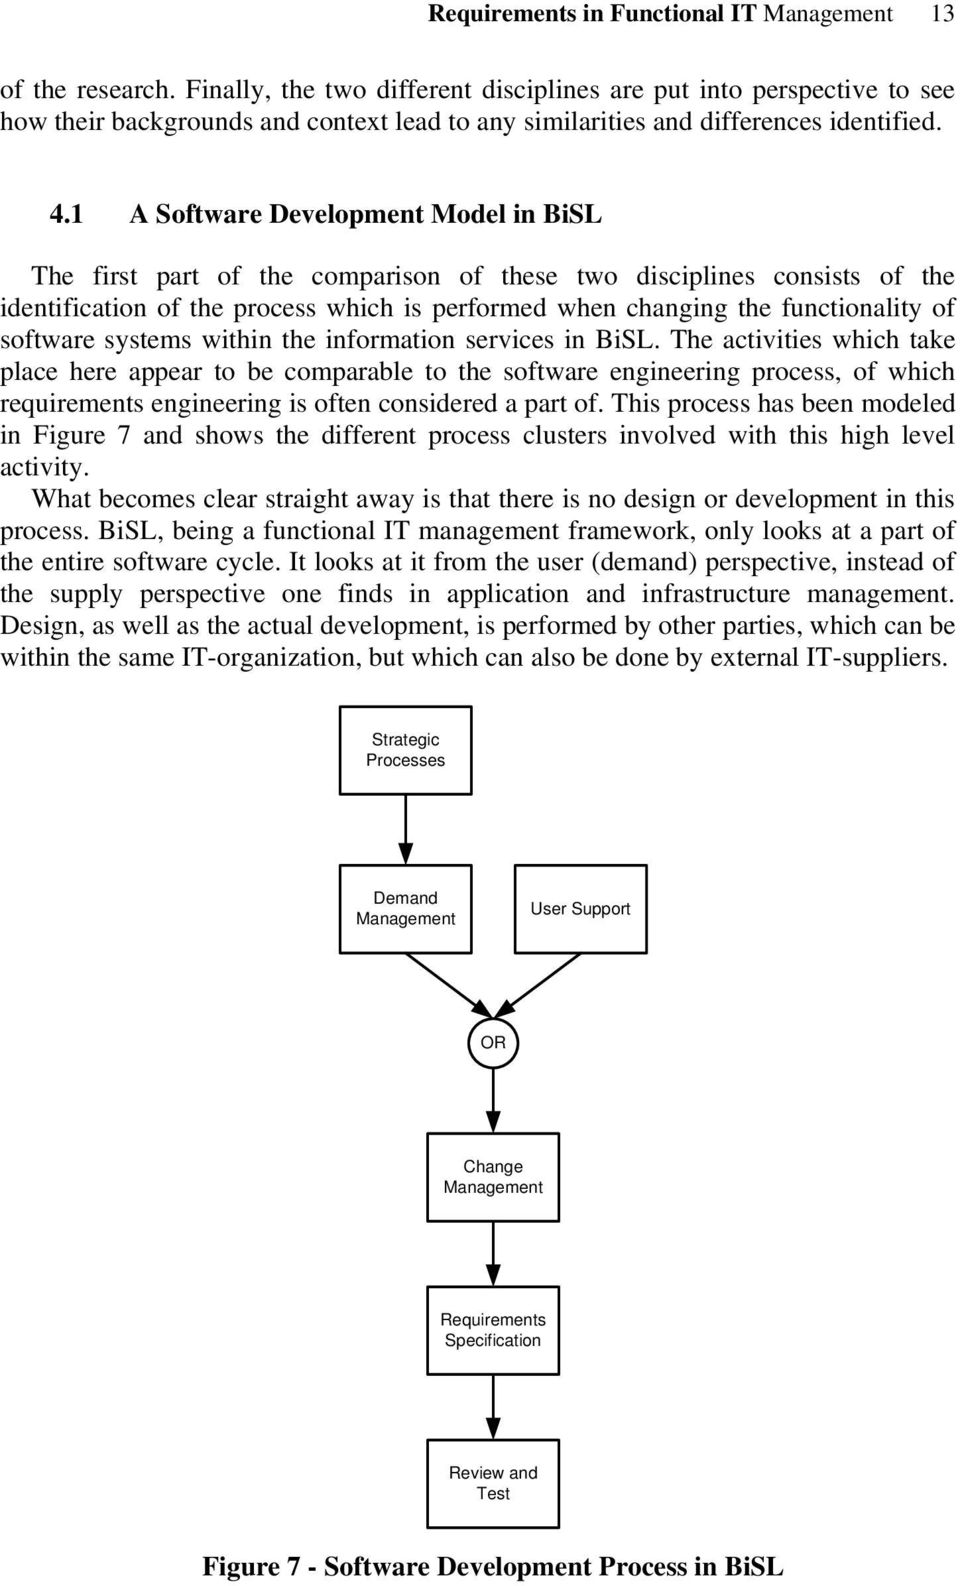 1 A Software Development Model in BiSL The first part of the comparison of these two disciplines consists of the identification of the process which is performed when changing the functionality of